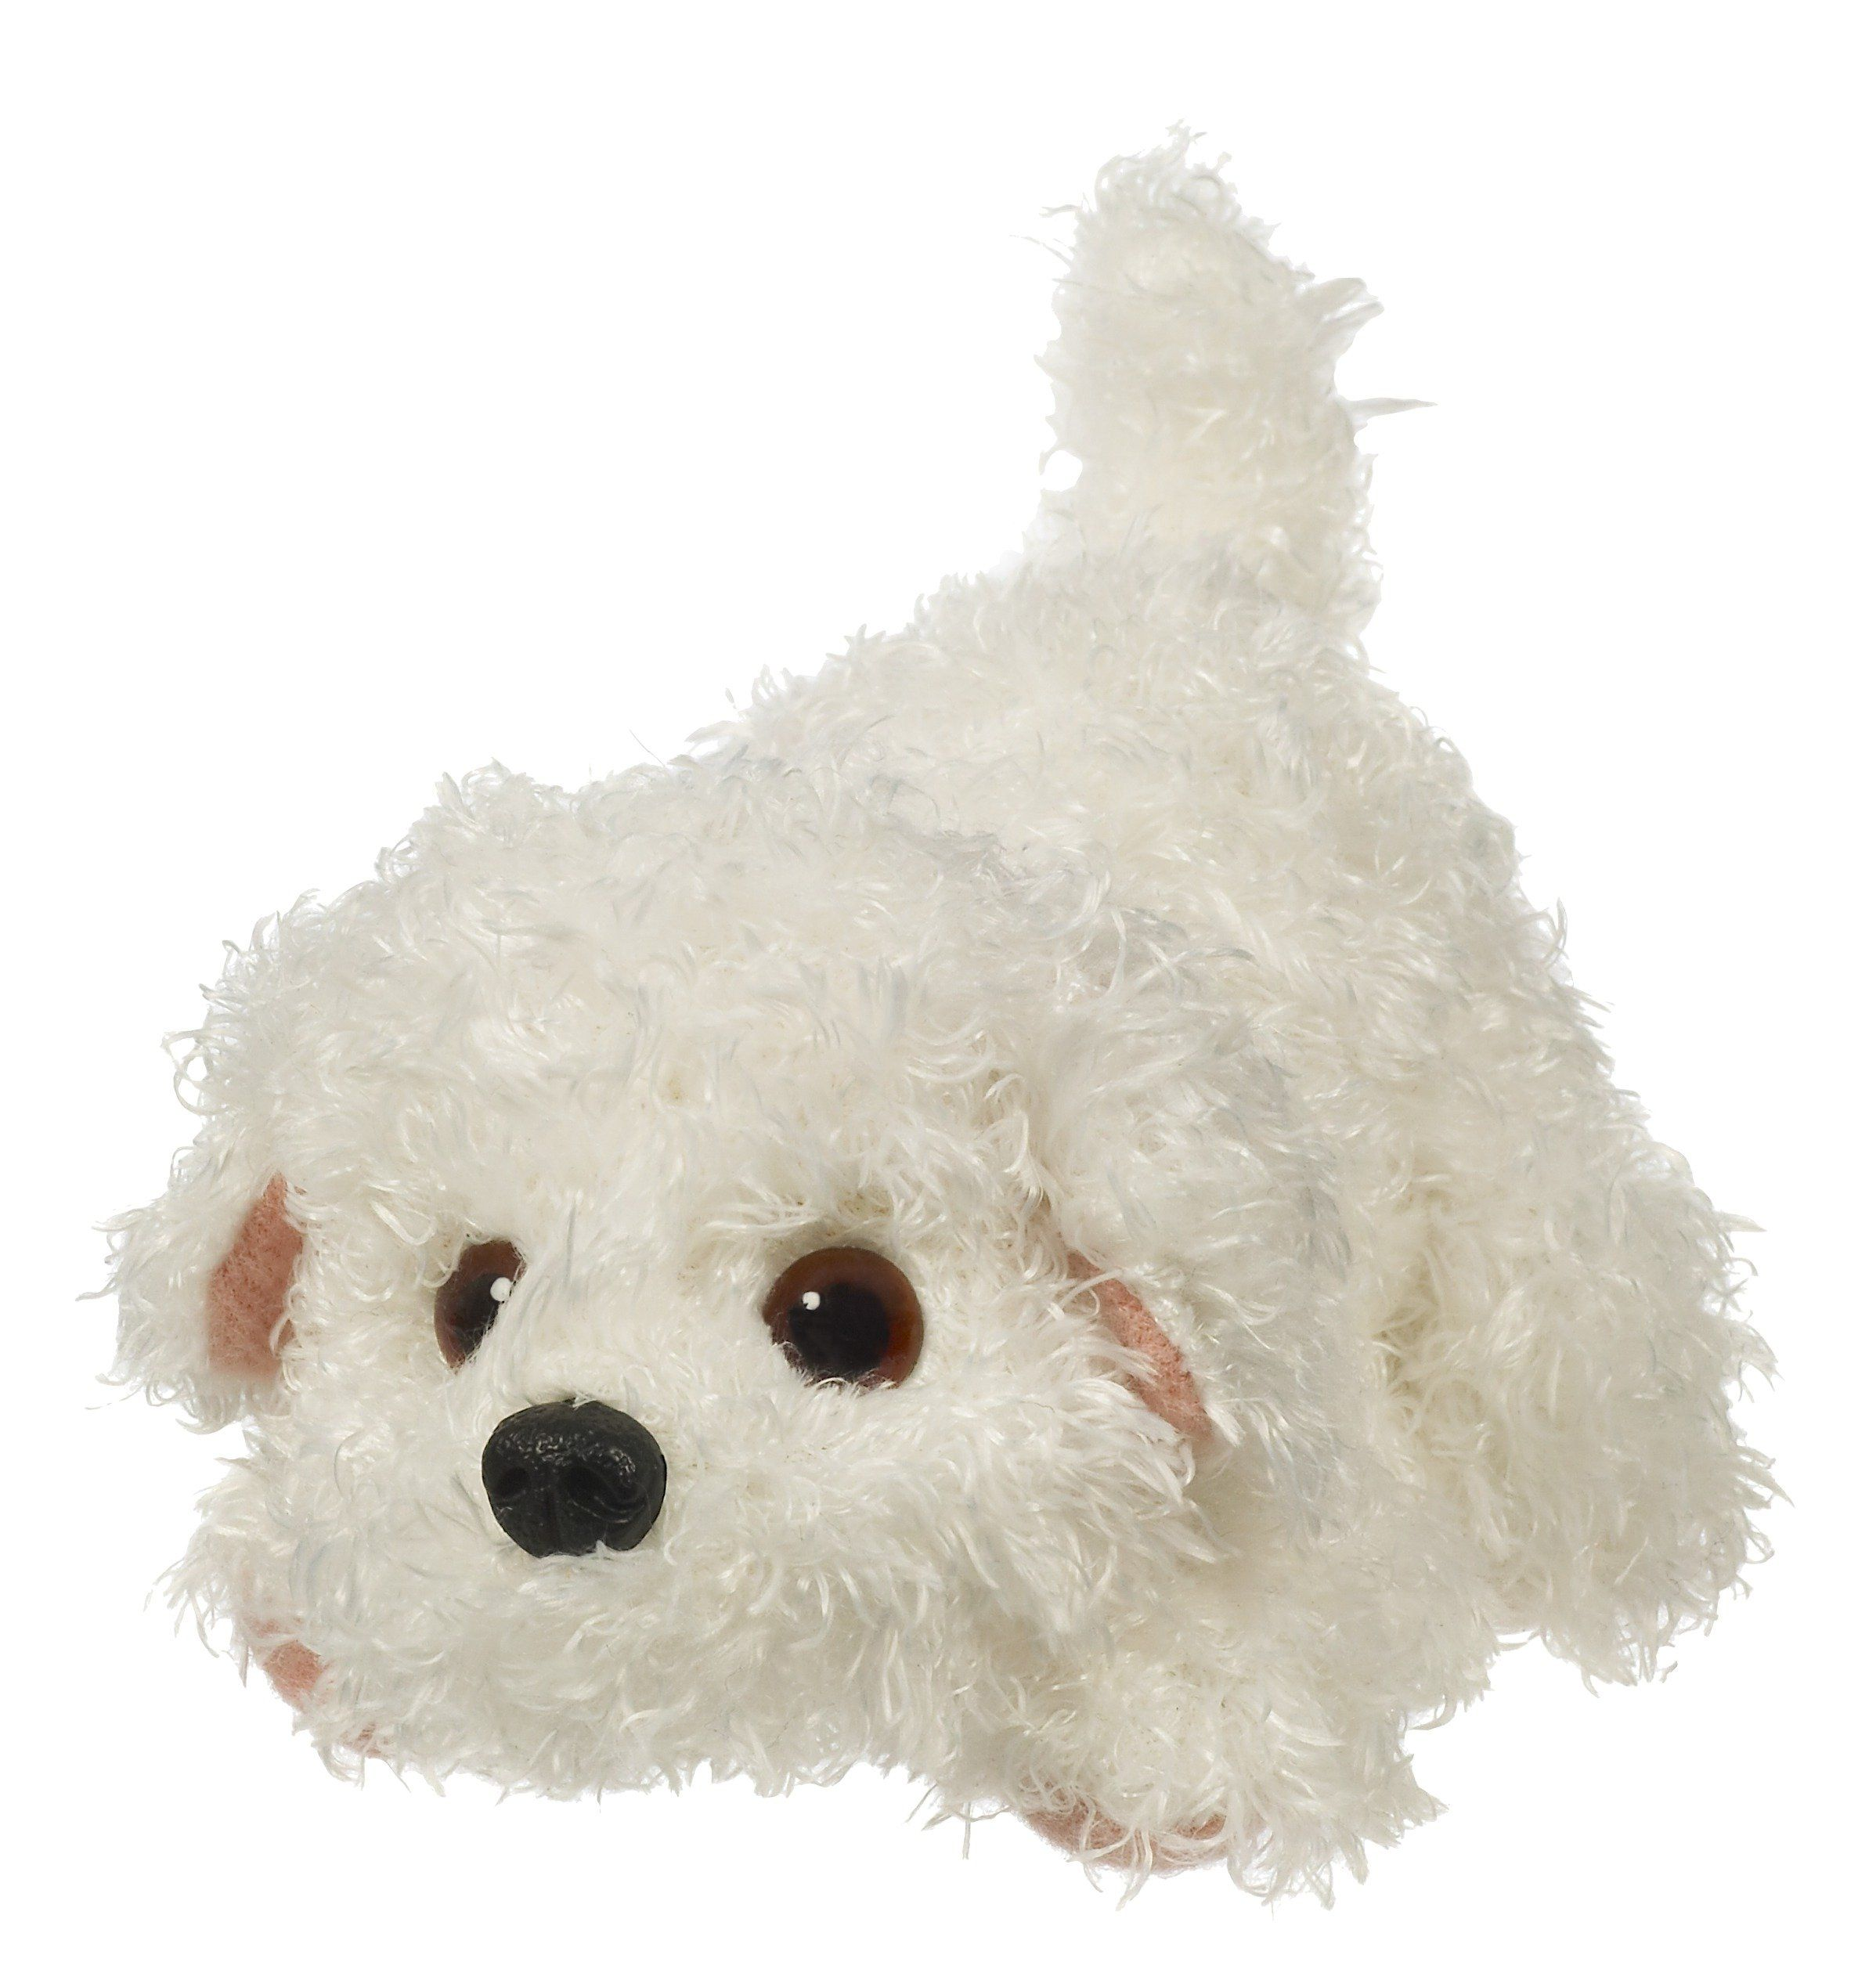 Furreal Friends Snuggimals Puppy White A Lot More Details Can Be Found At The Photo Url This Is An Affiliate Link Hannu Fur Real Friends Puppies Animals